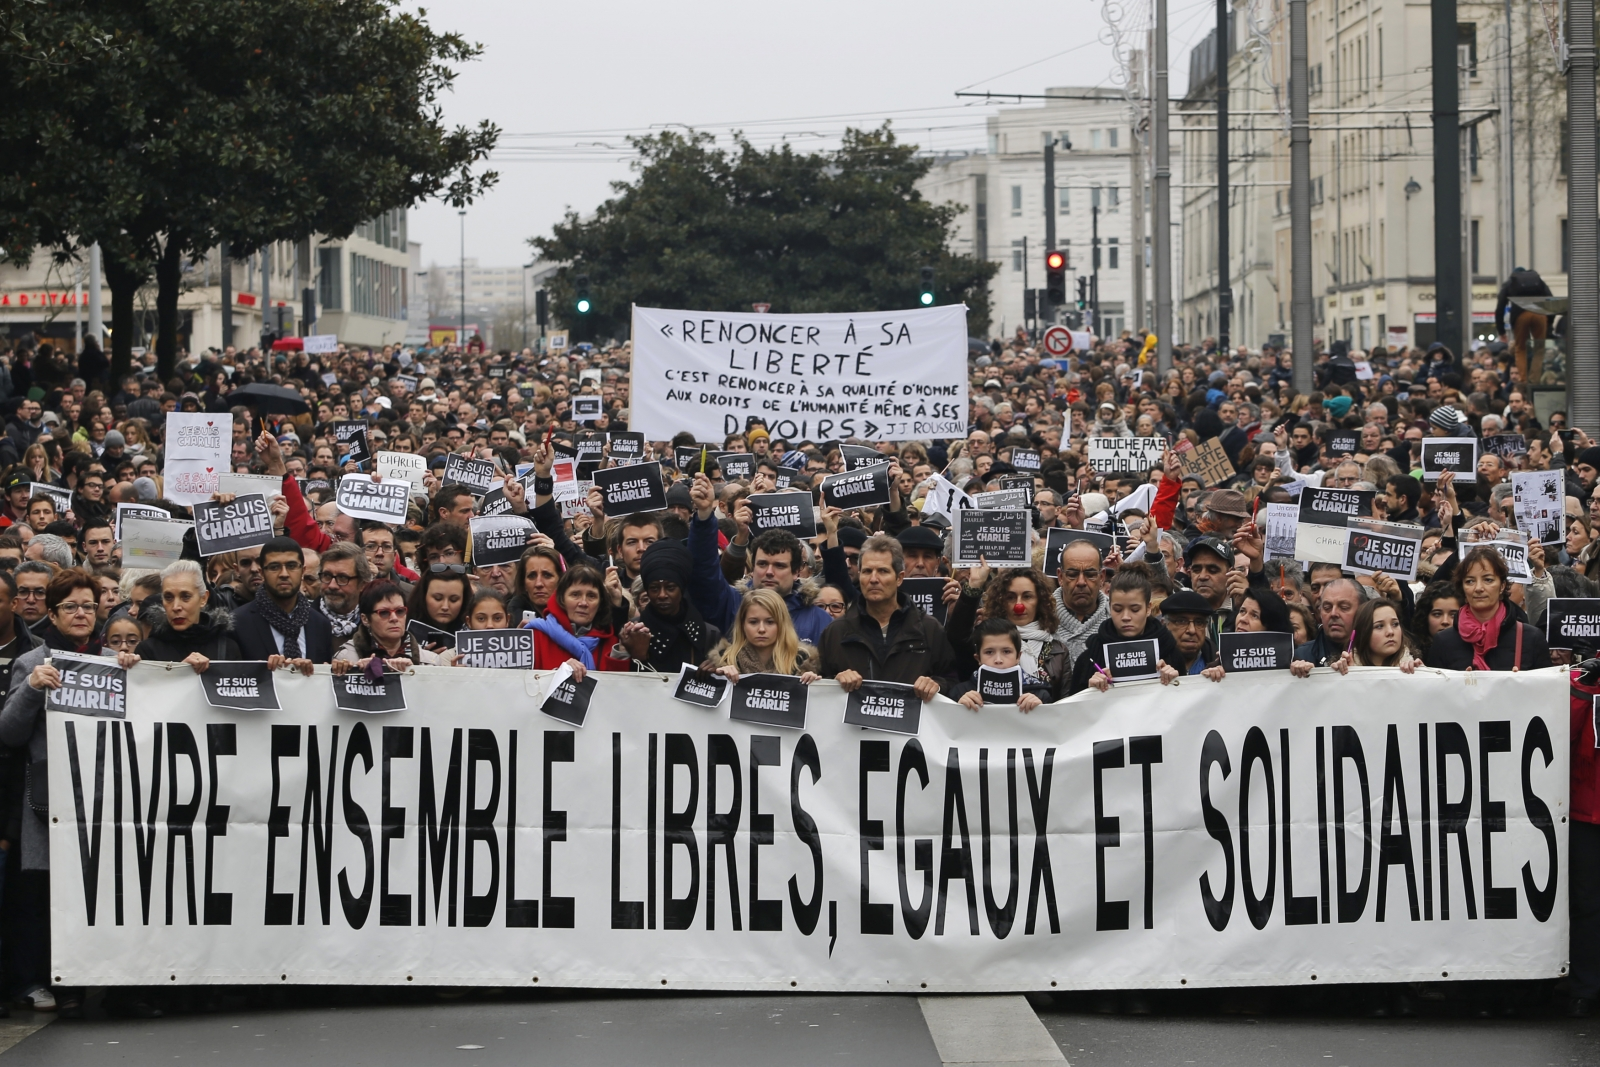 Paris rally against extremism